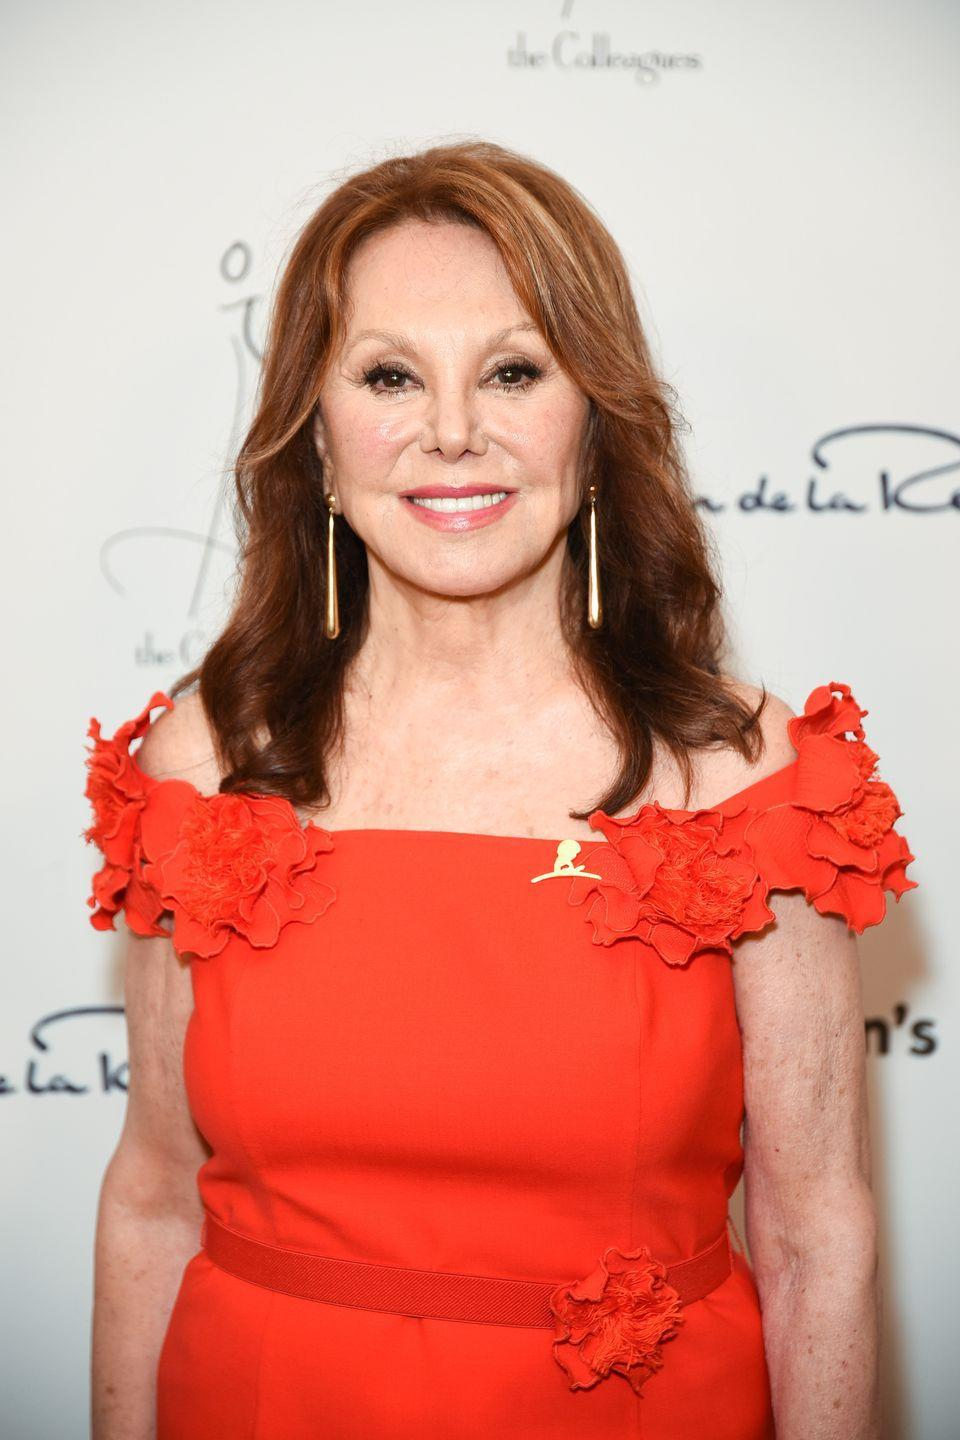 <p>The television icon has had many guest roles in years since, on shows like <em>Law & Order: Special Victims Unit </em>and <em>Ugly Betty,</em> as well as roles in films like <em>Ocean's Eight </em>and <em>LOL</em>. </p>